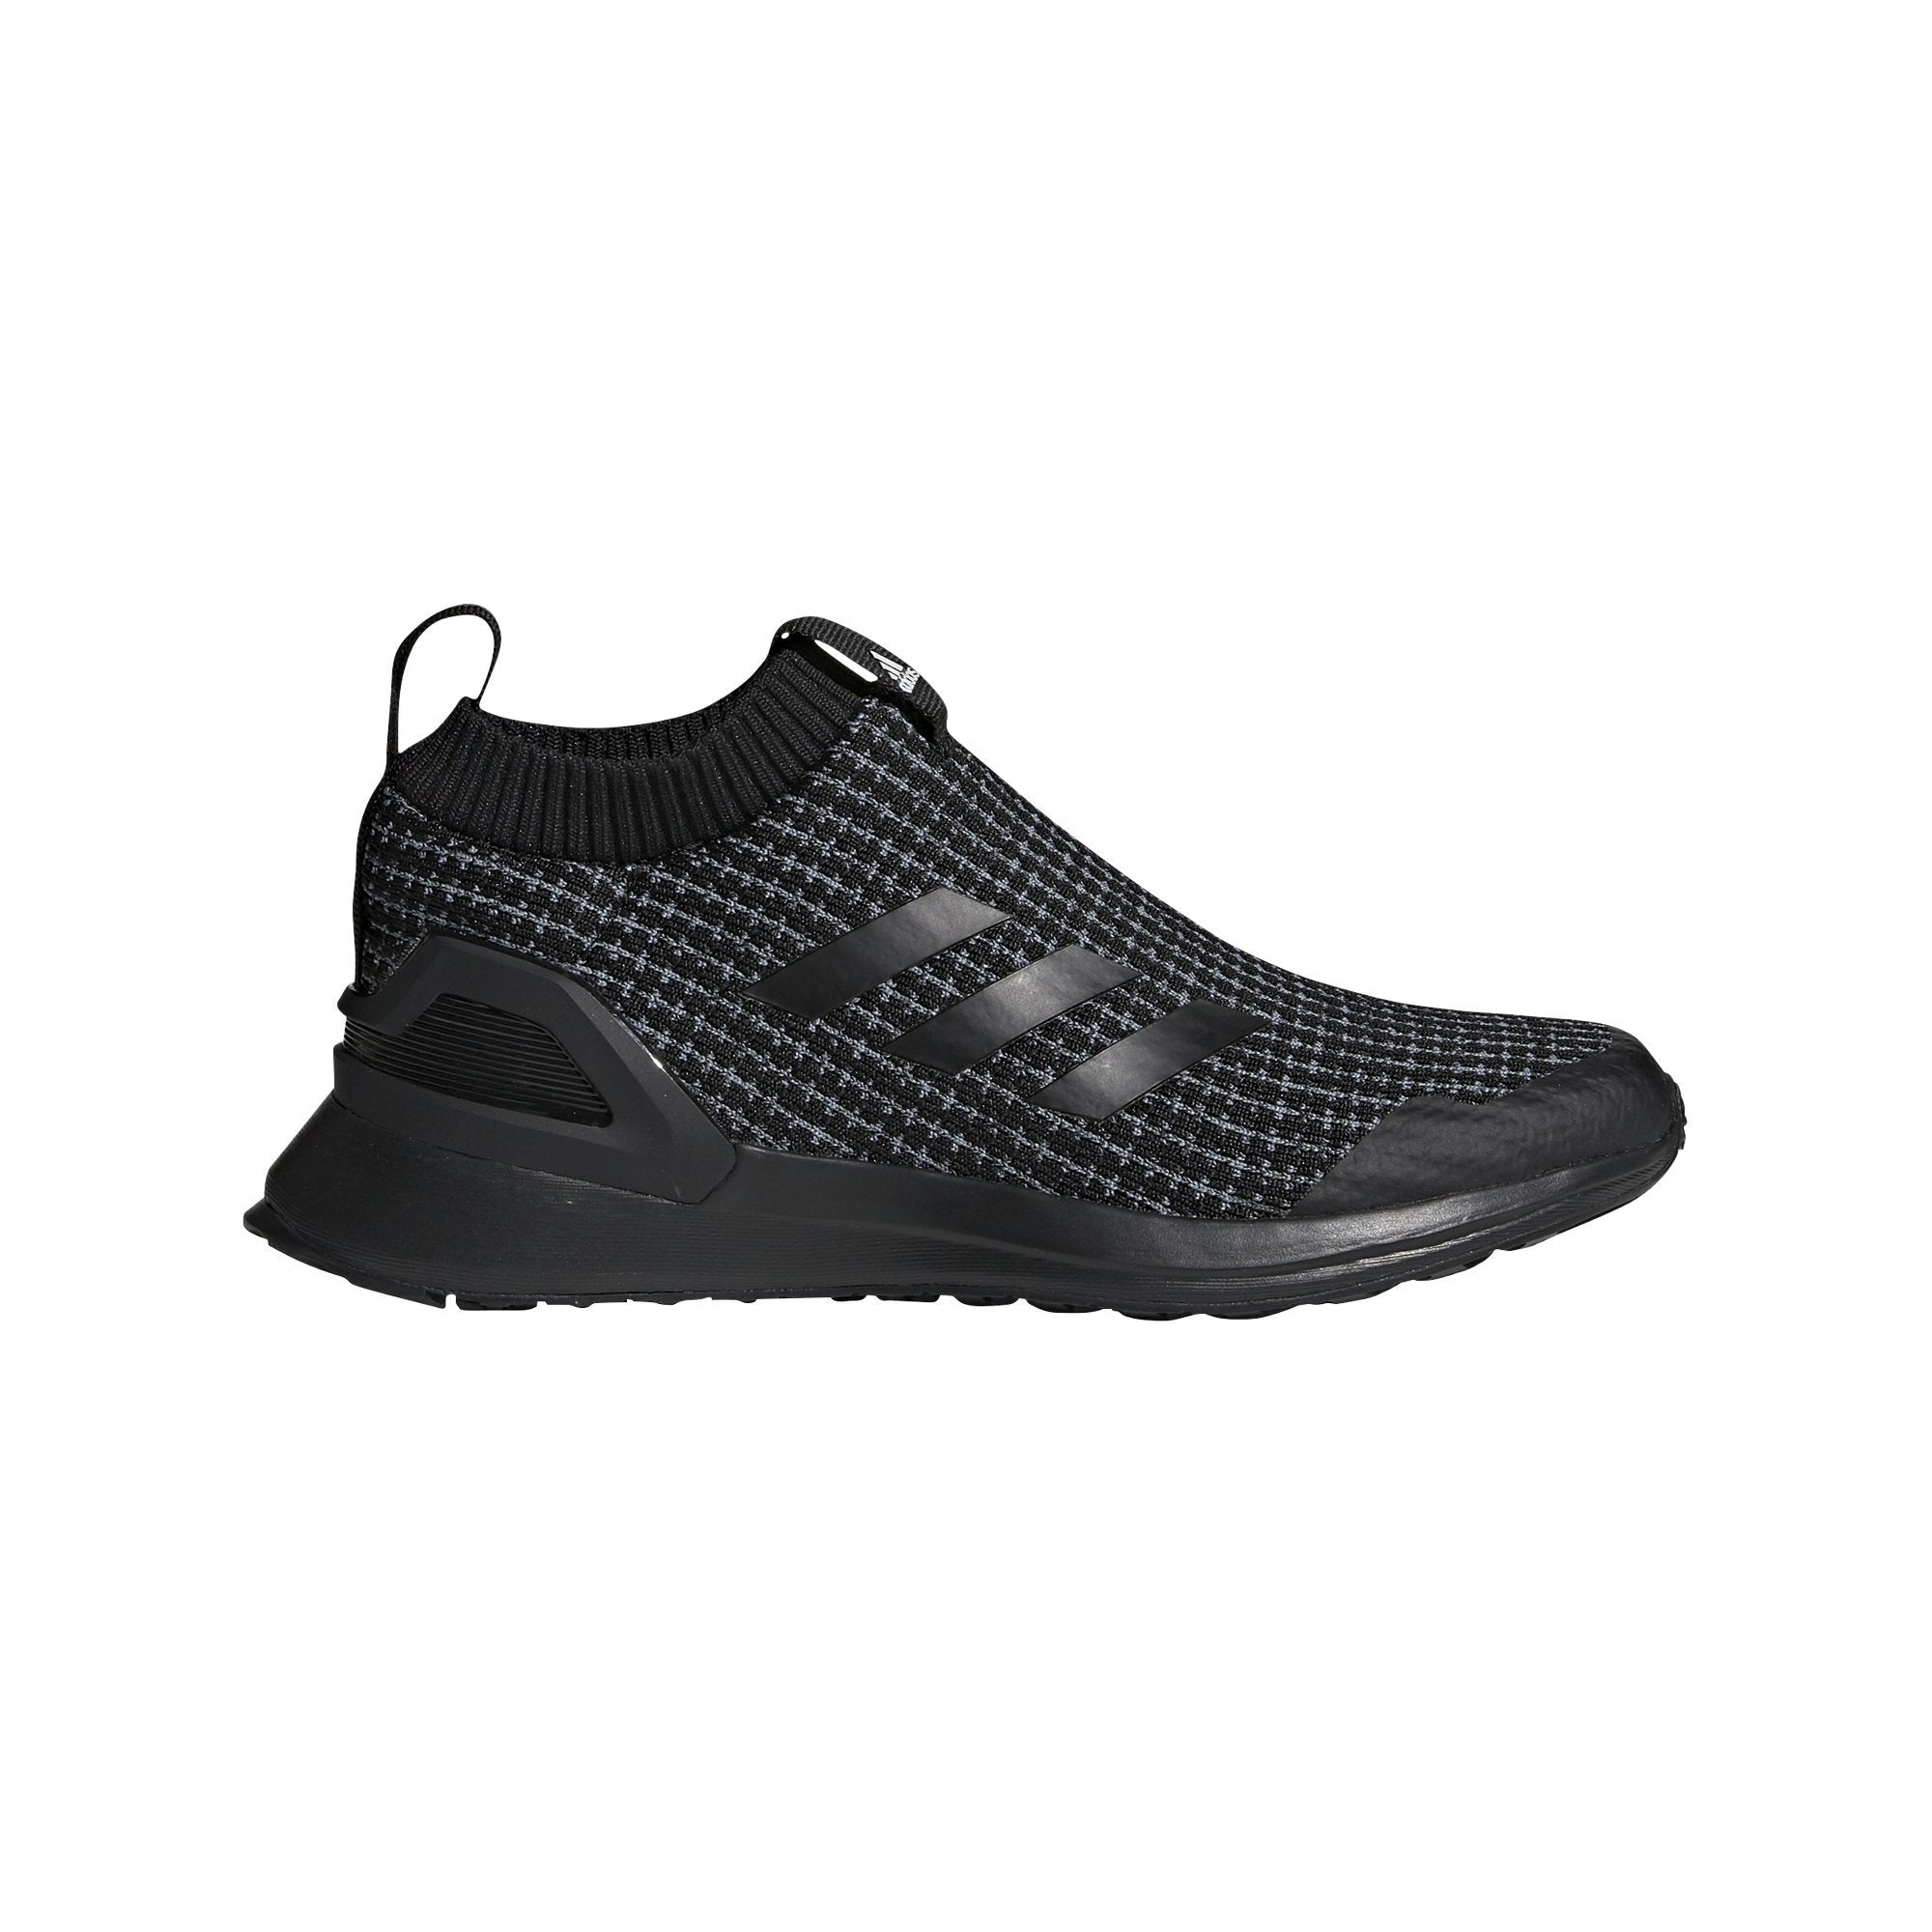 Adidas Kids RapidaRun Shoes - core black/core black/ftwr white SP-FOOTWEAR-KIDS Adidas